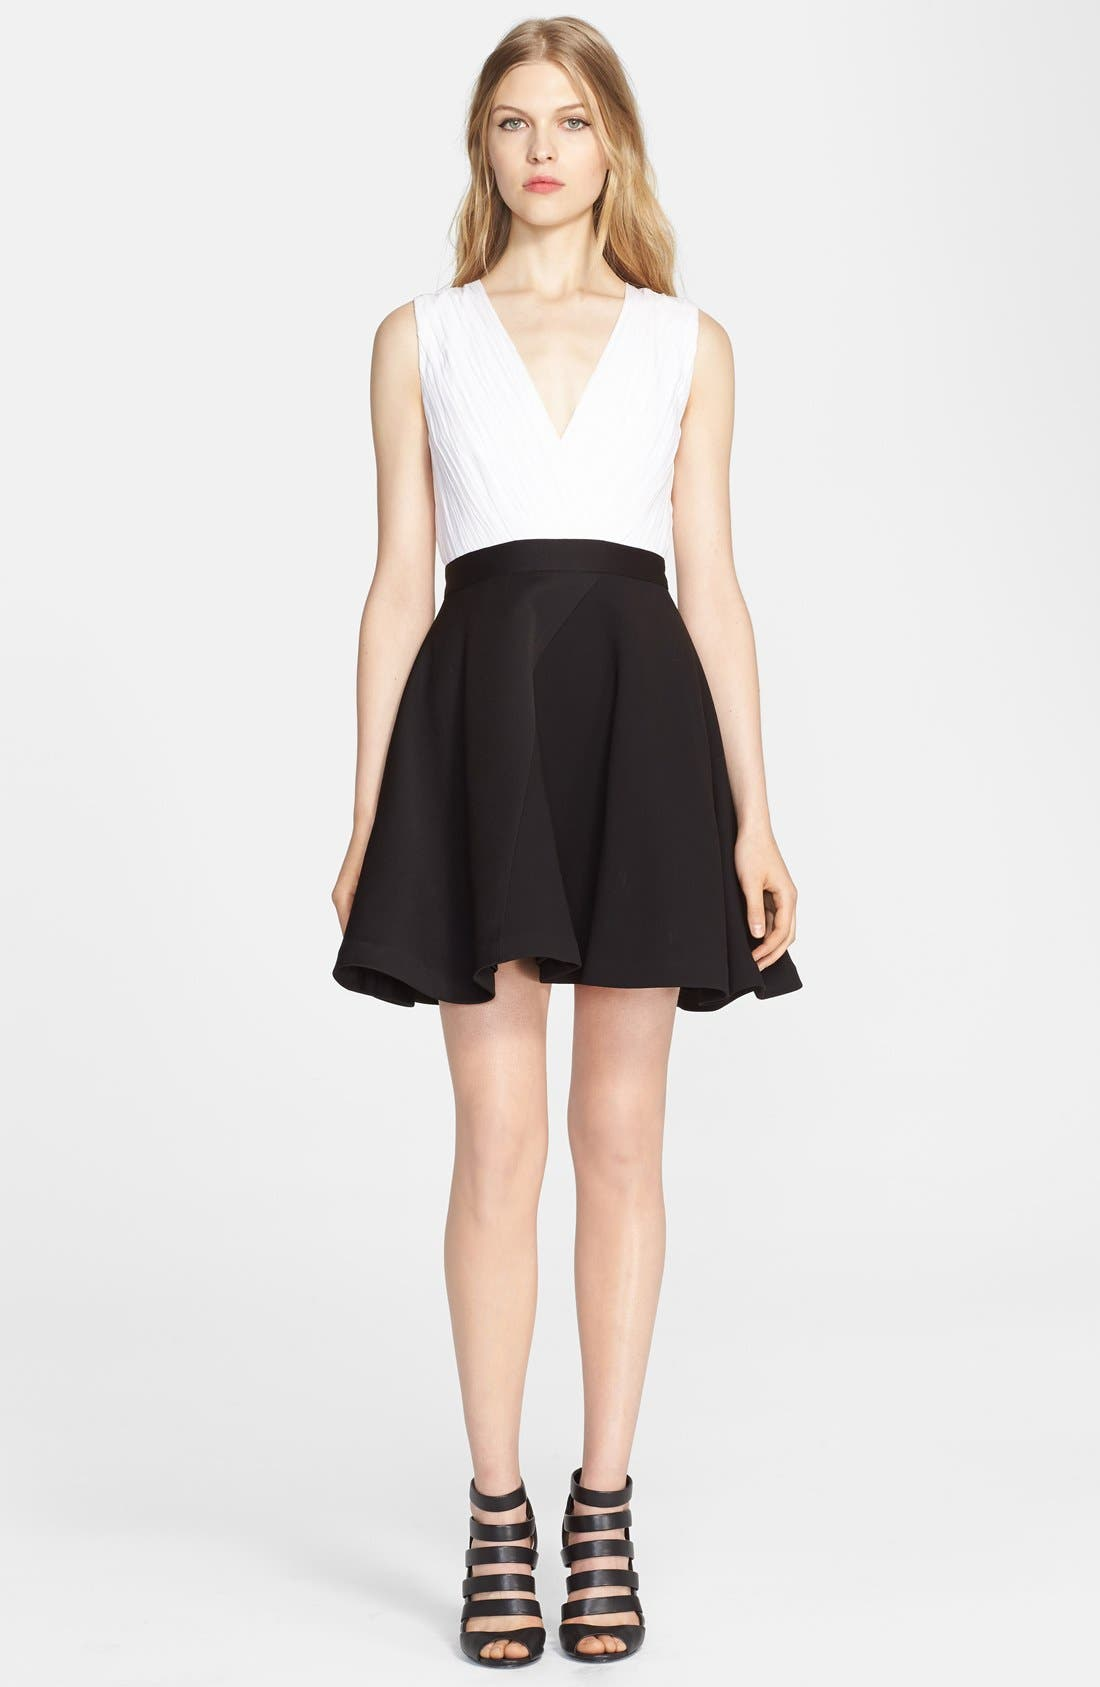 Alternate Image 1 Selected - Alice + Olivia 'Tobin' Mixed Media Fit & Flare Dress